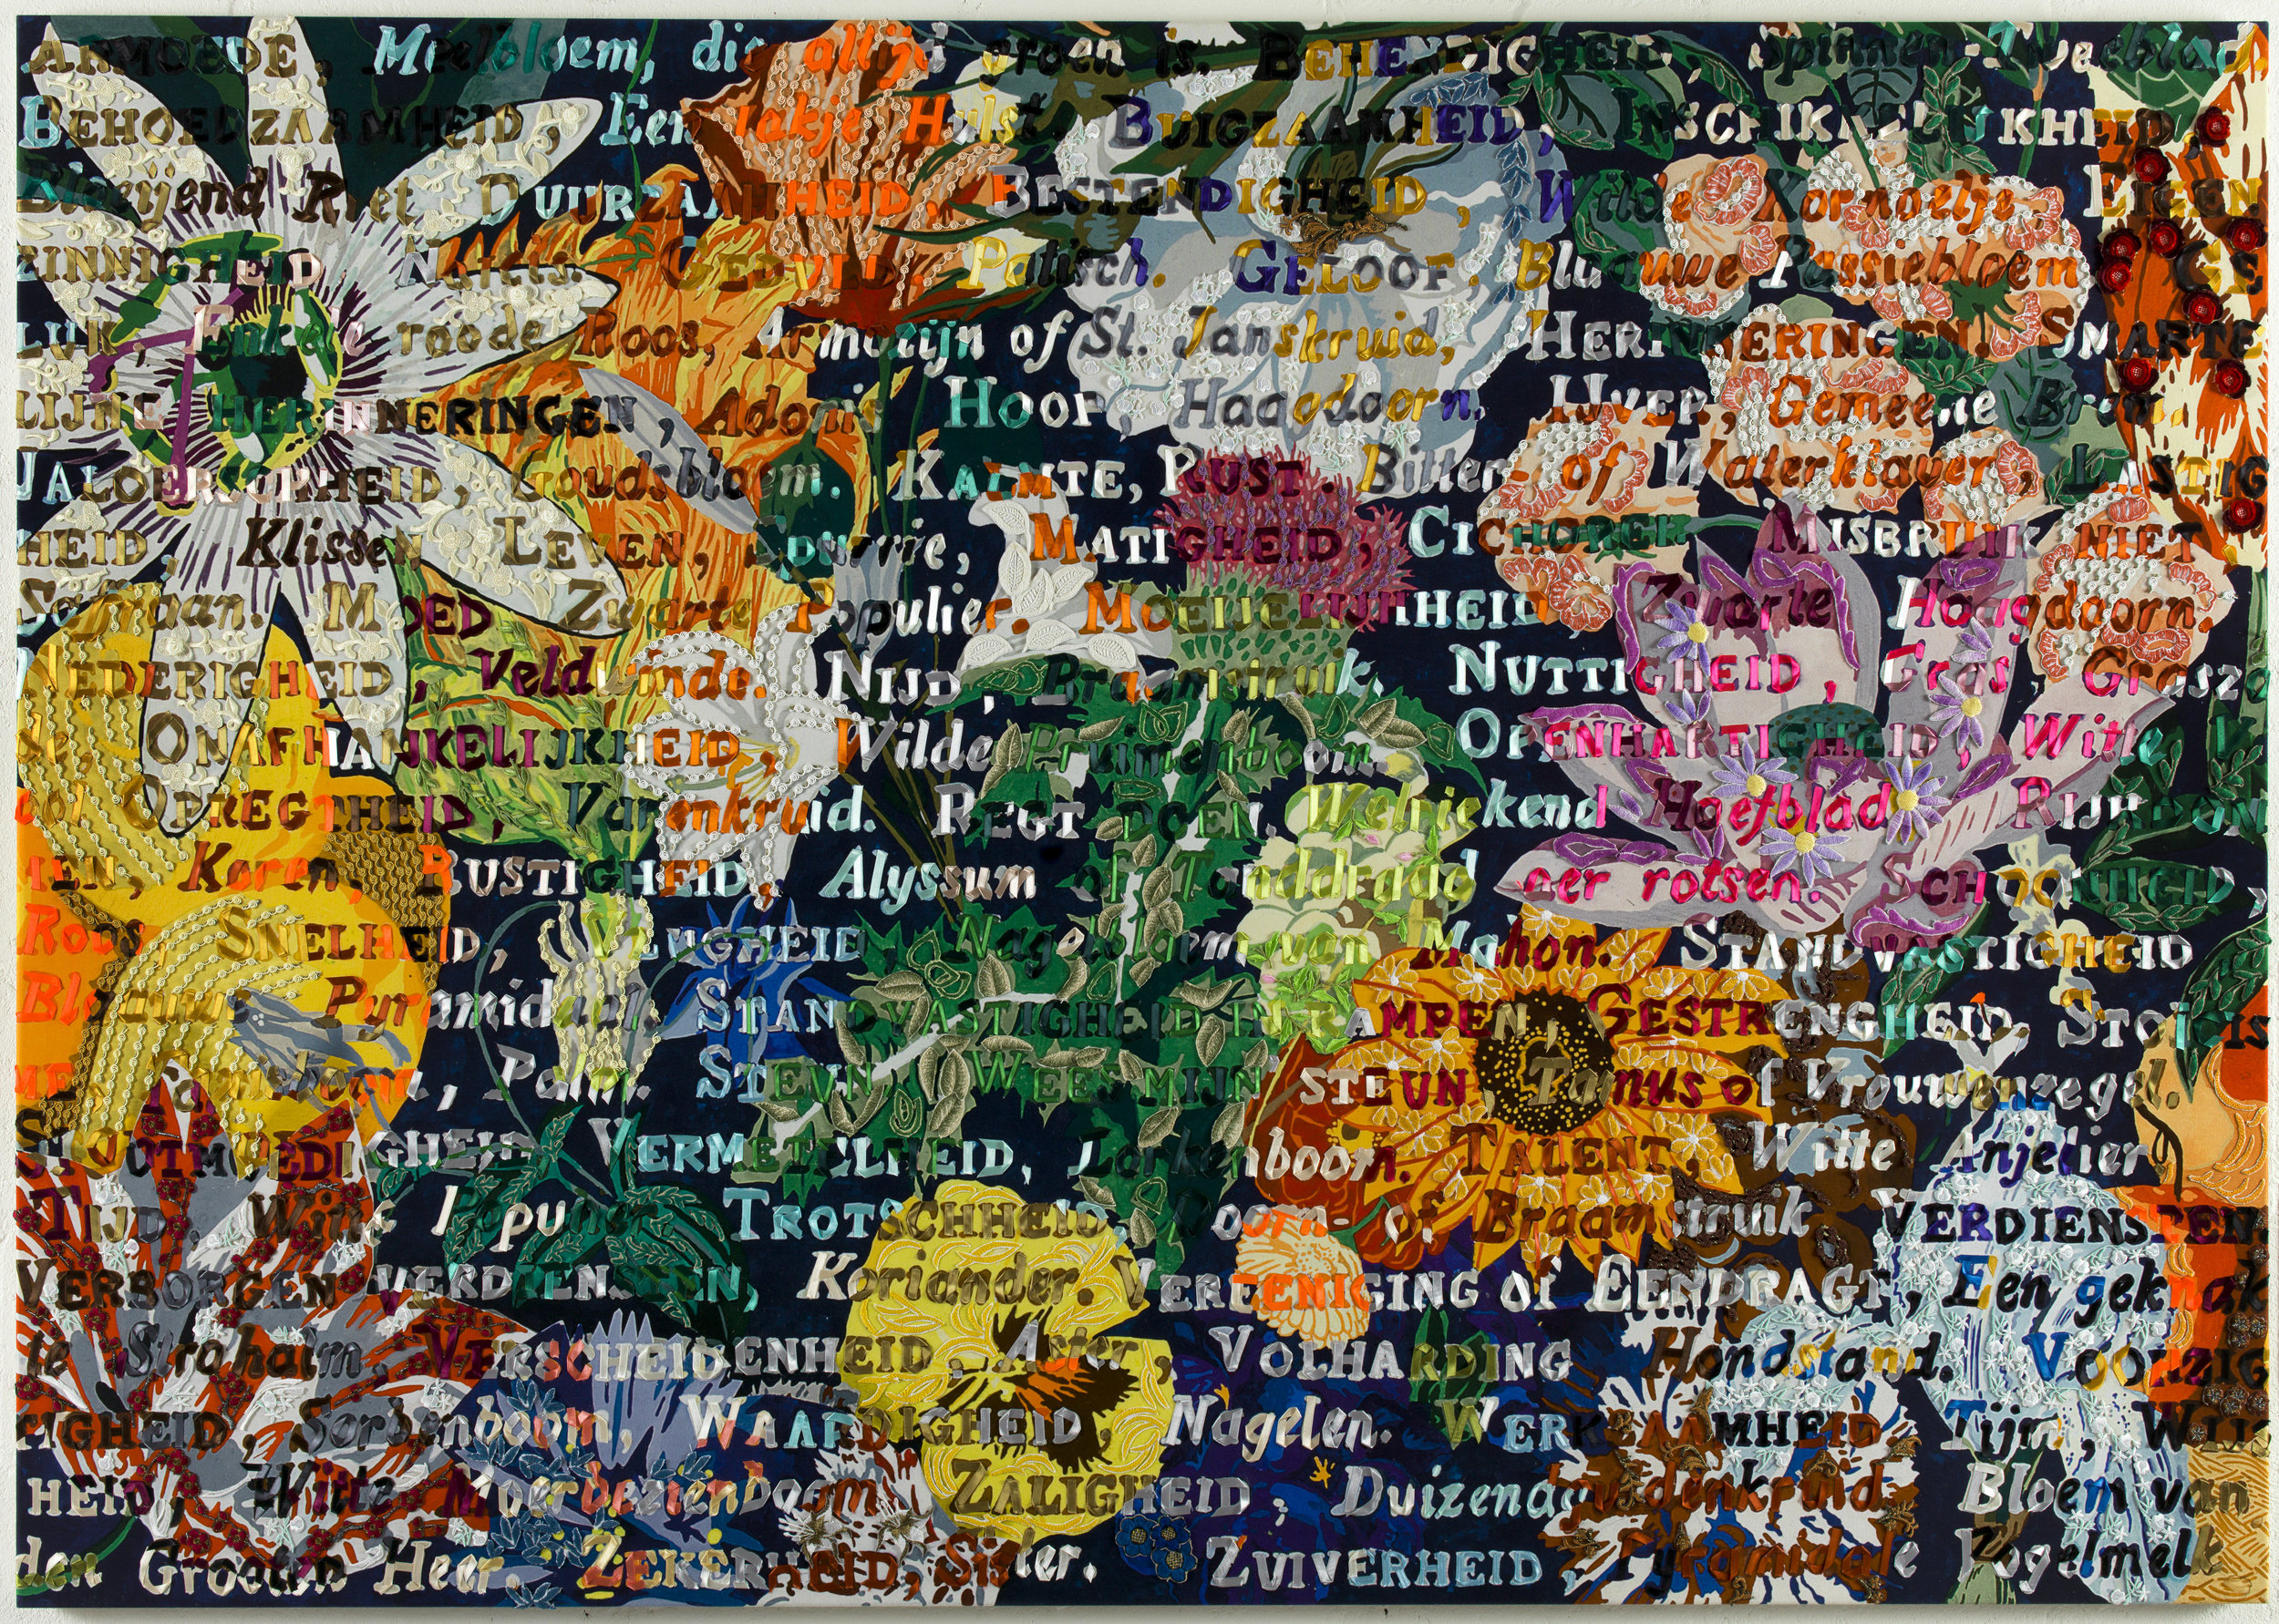 Speech of flowers, printed canvas painted with embroidery, 127 x 185 cm